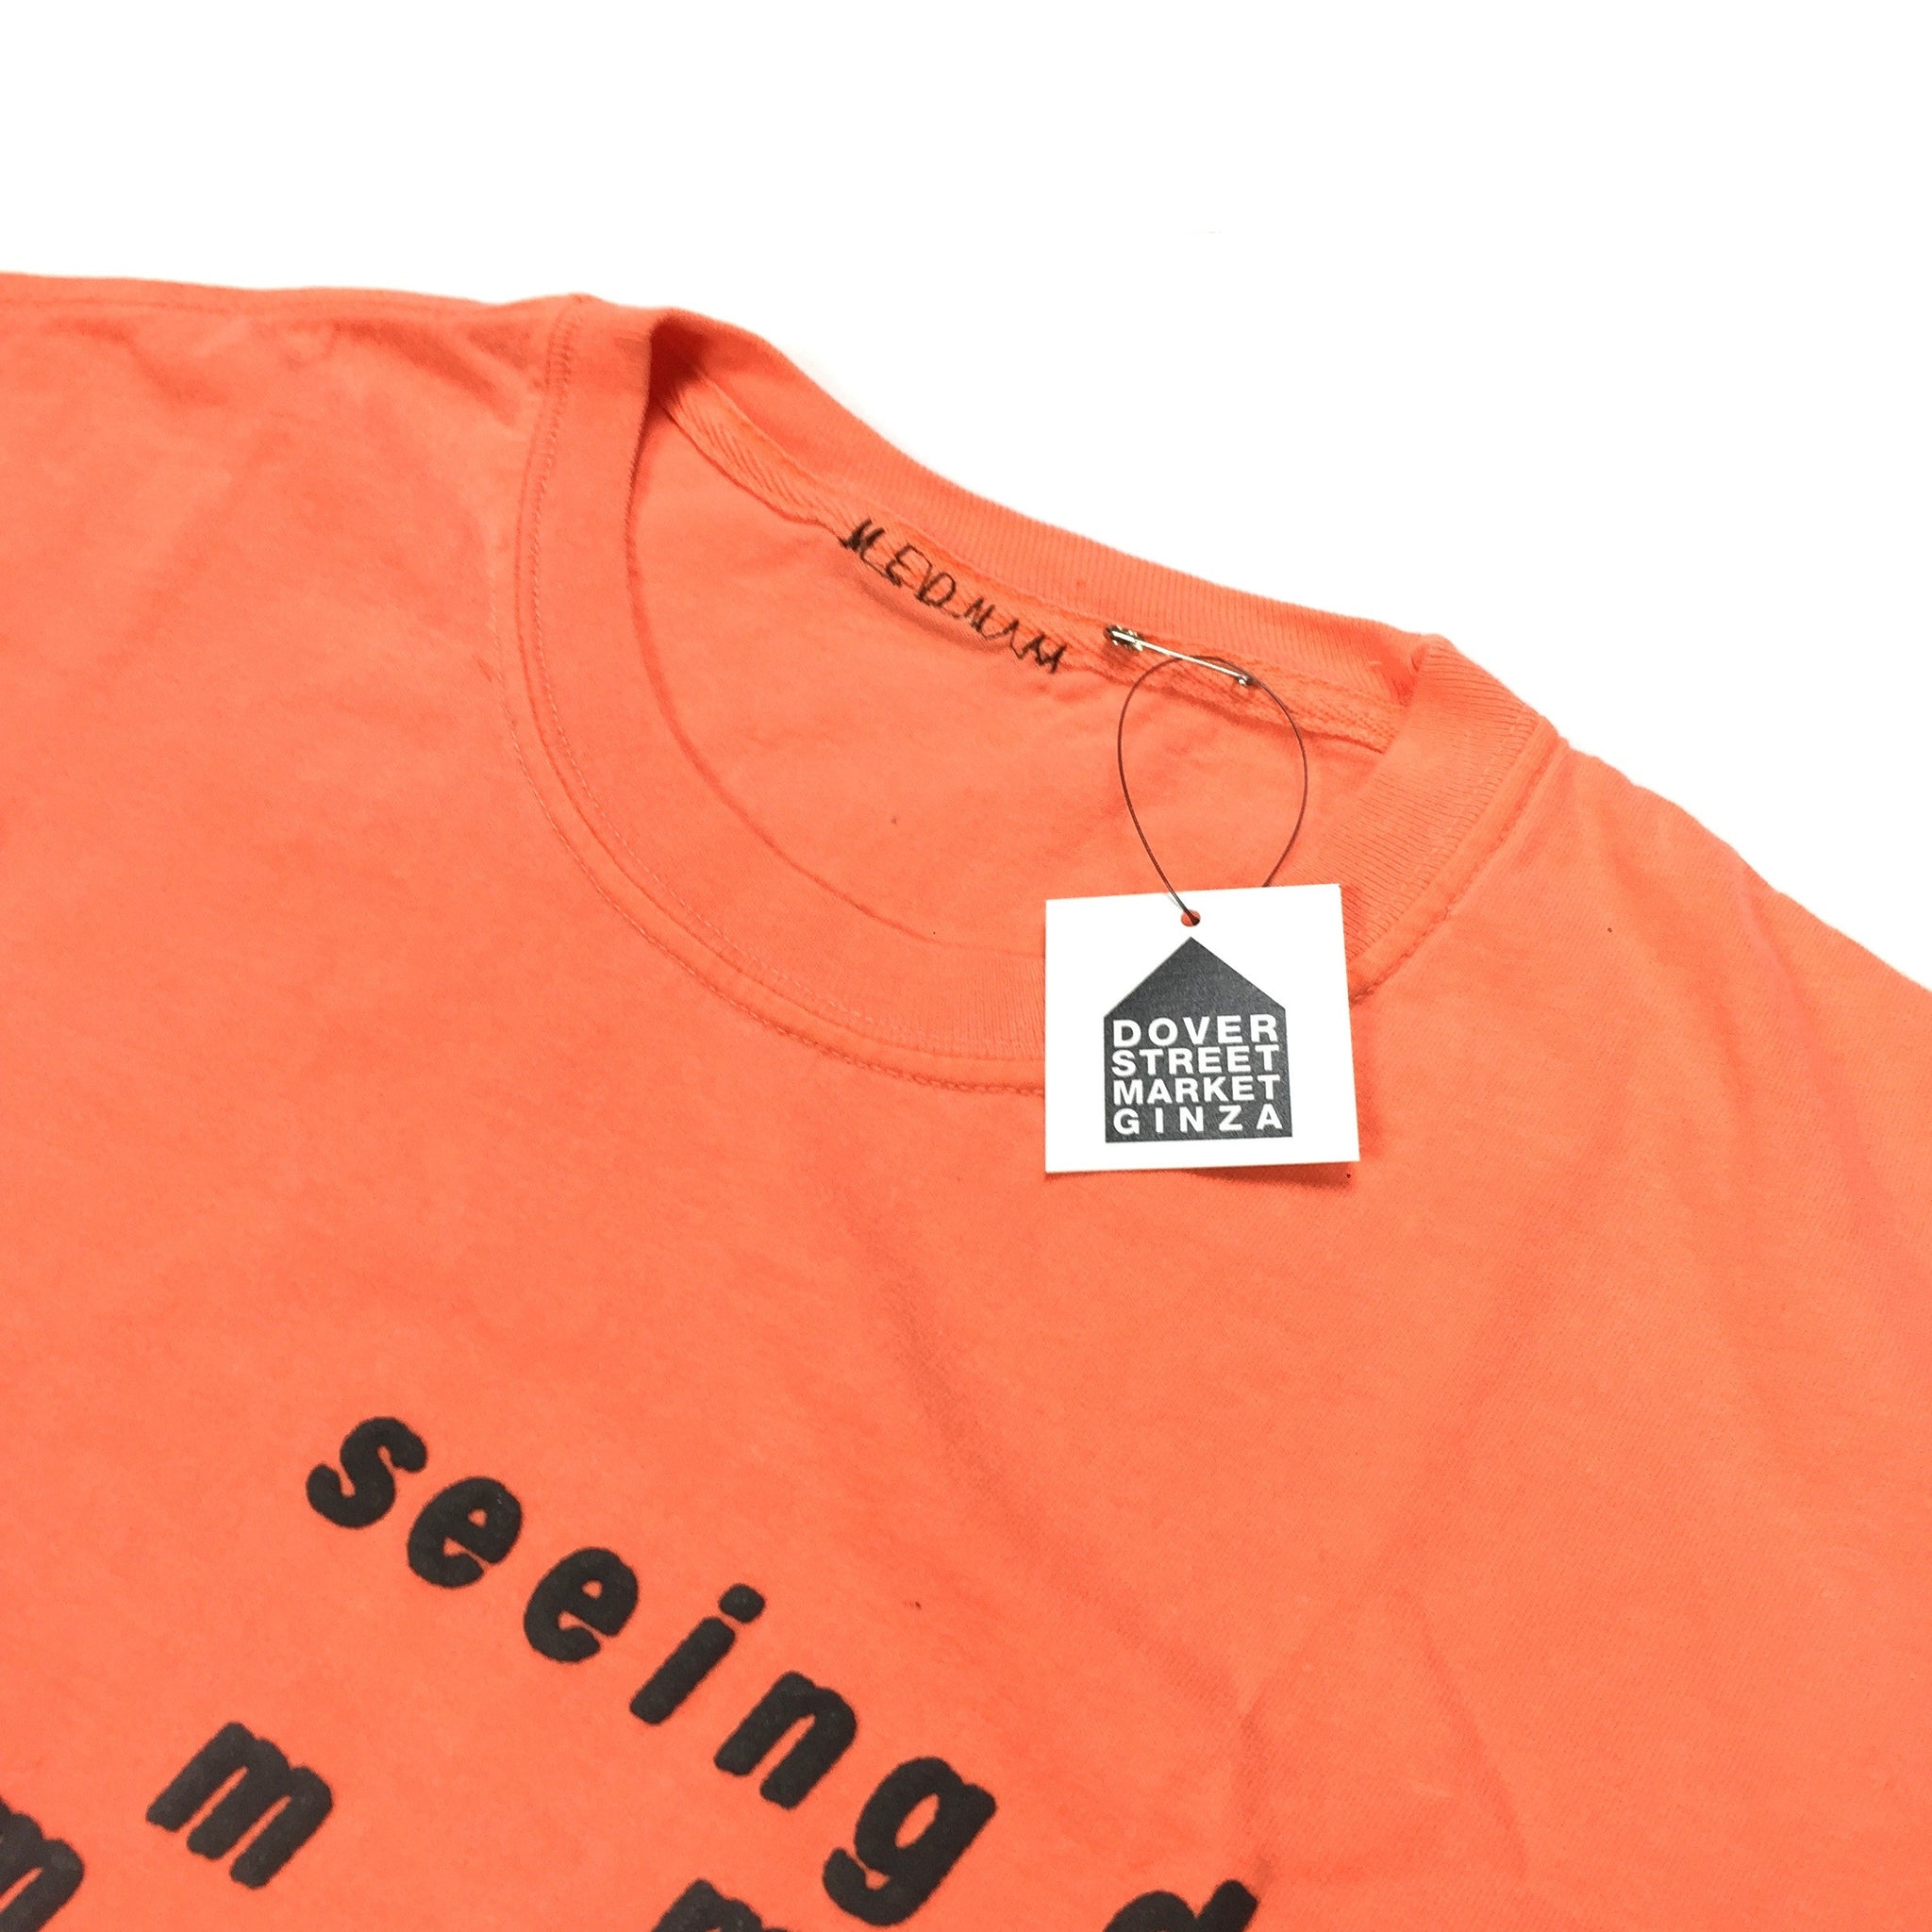 Cactus Plant Flea Market x DSM Ginza - 'Seeing Double' T-Shirt